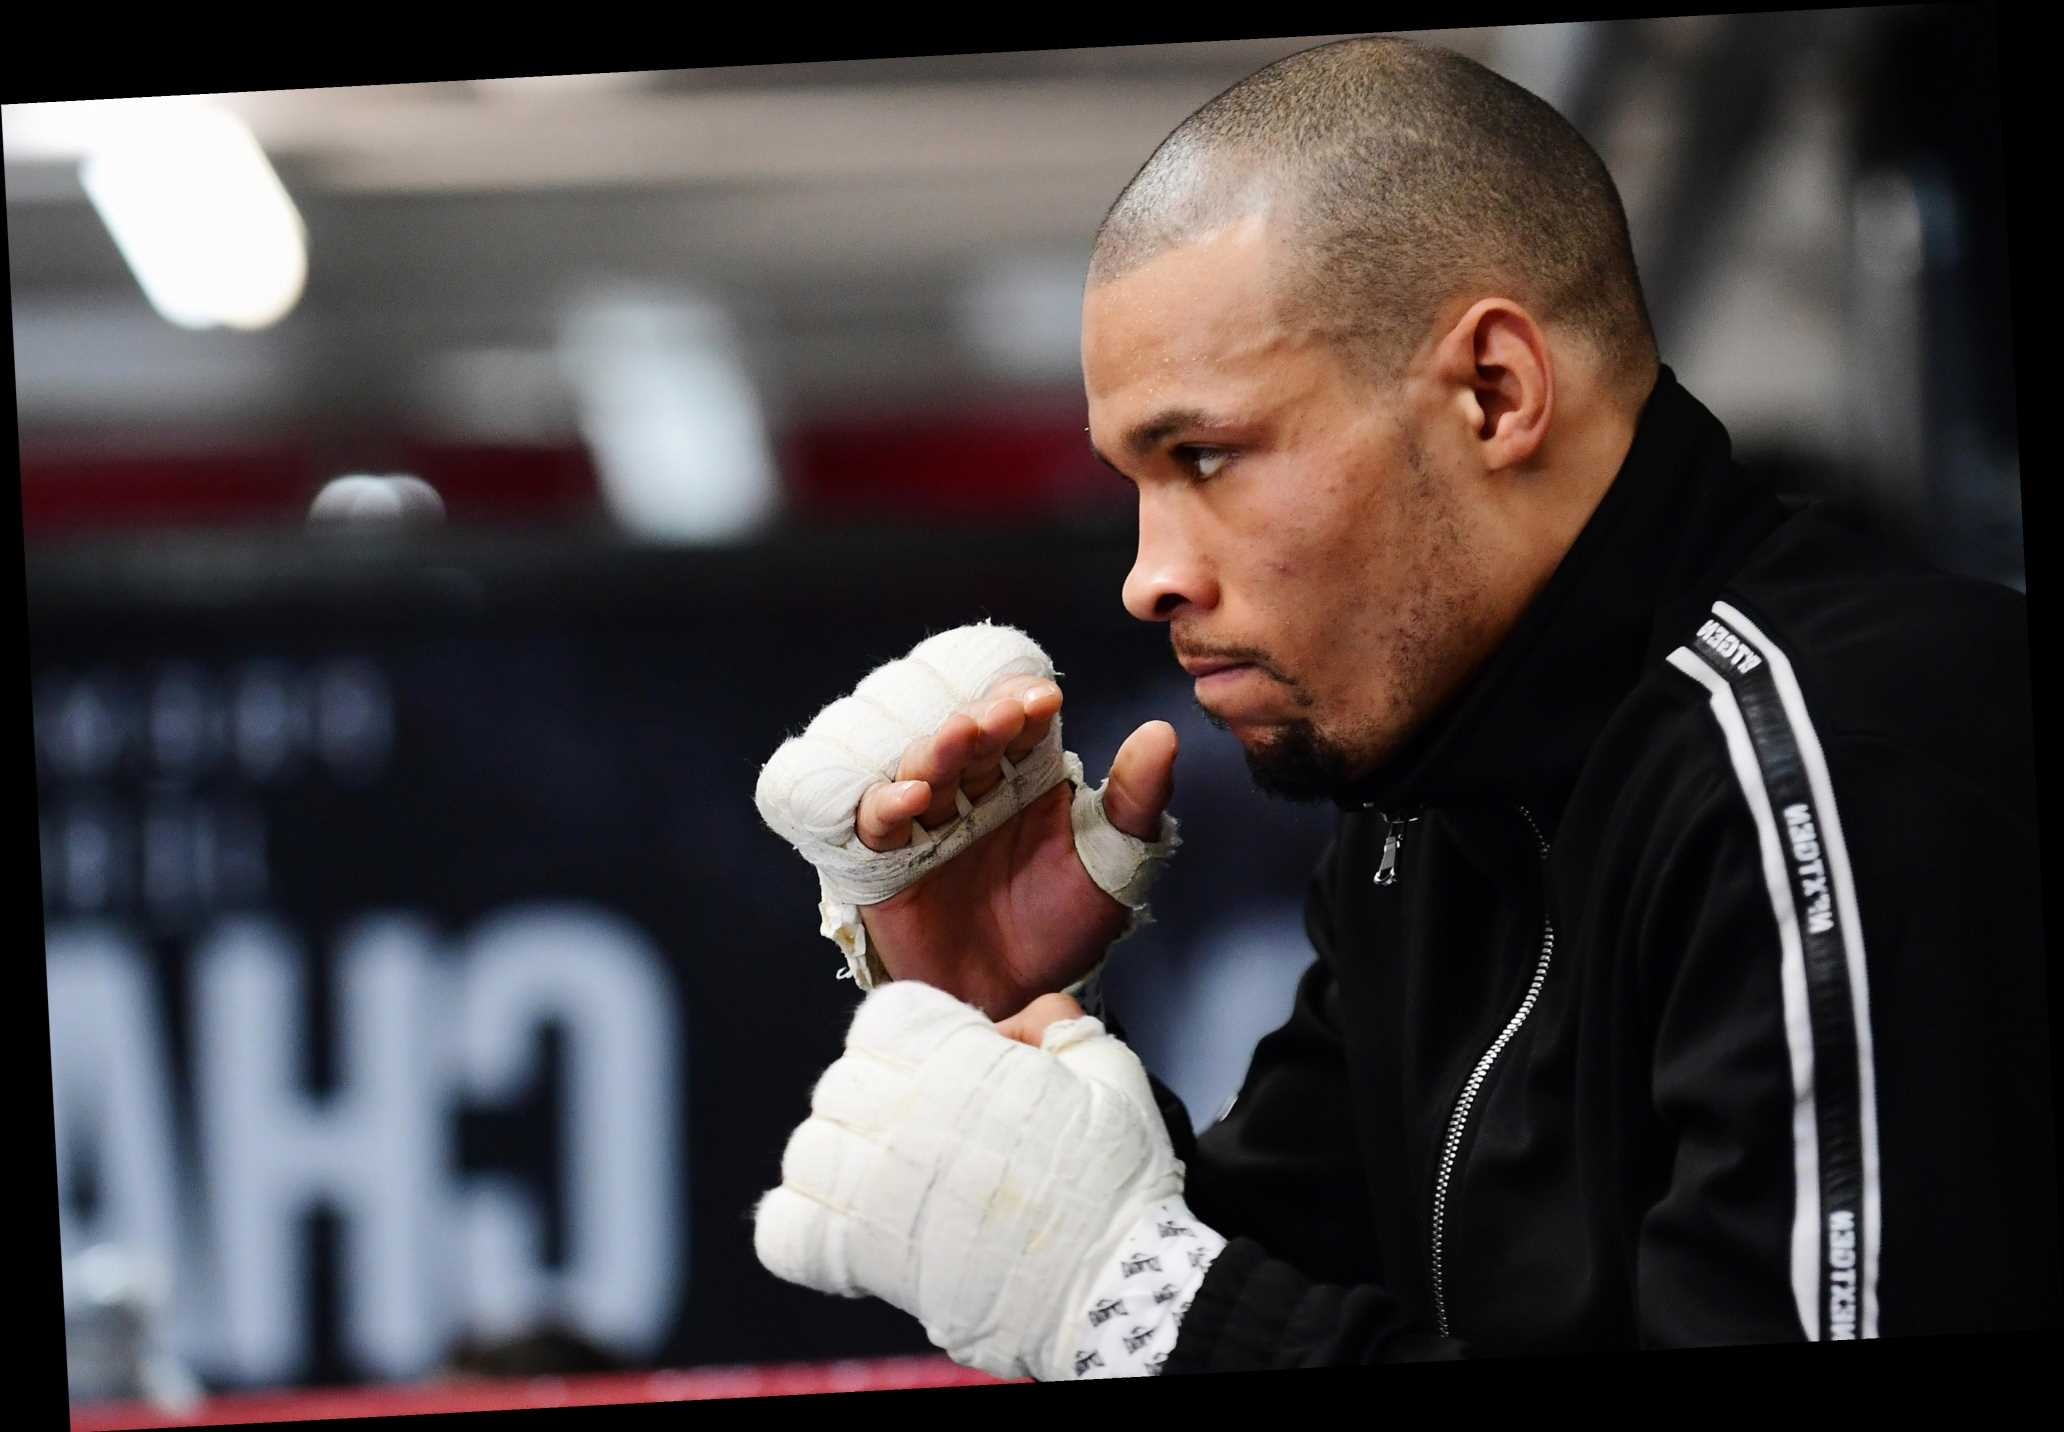 Chris Eubank Jr 'thrilled' to sign promotional deal with Sauerland and says he wants 'all the champions'